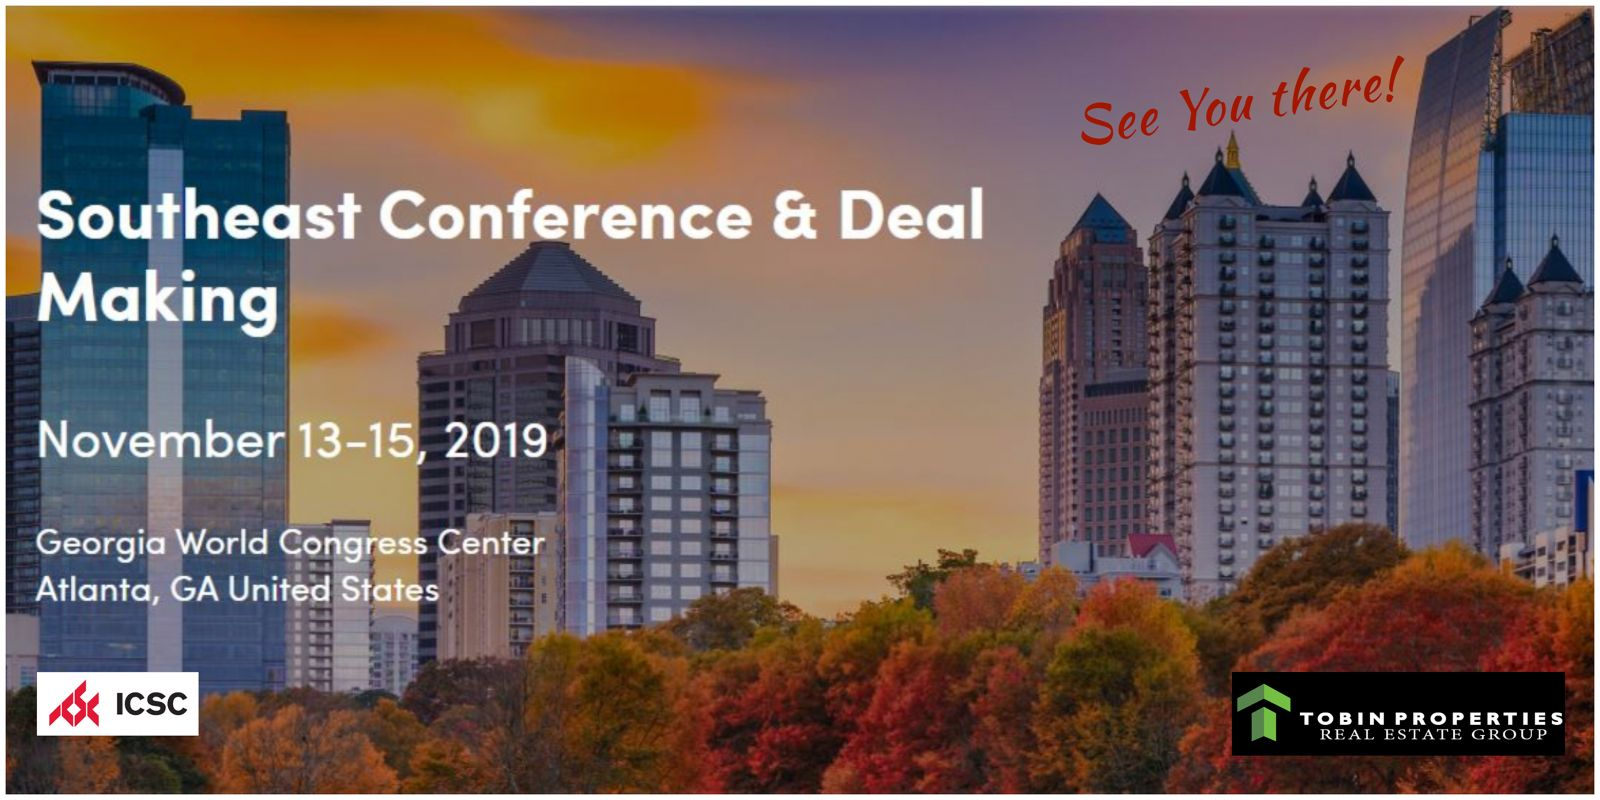 image of Tobin Properties Real Estate Group at the ICSC ATLANTA CONFERENCE & DEAL MAKING 2019 (Nov 13 - 15) to continue our commitment in the Industry. We encourage Principles, Clients, and Prospects to schedule an appointment to meet with us at the convention. Send us an email: info@tobinprop.com. See you in Atlanta!